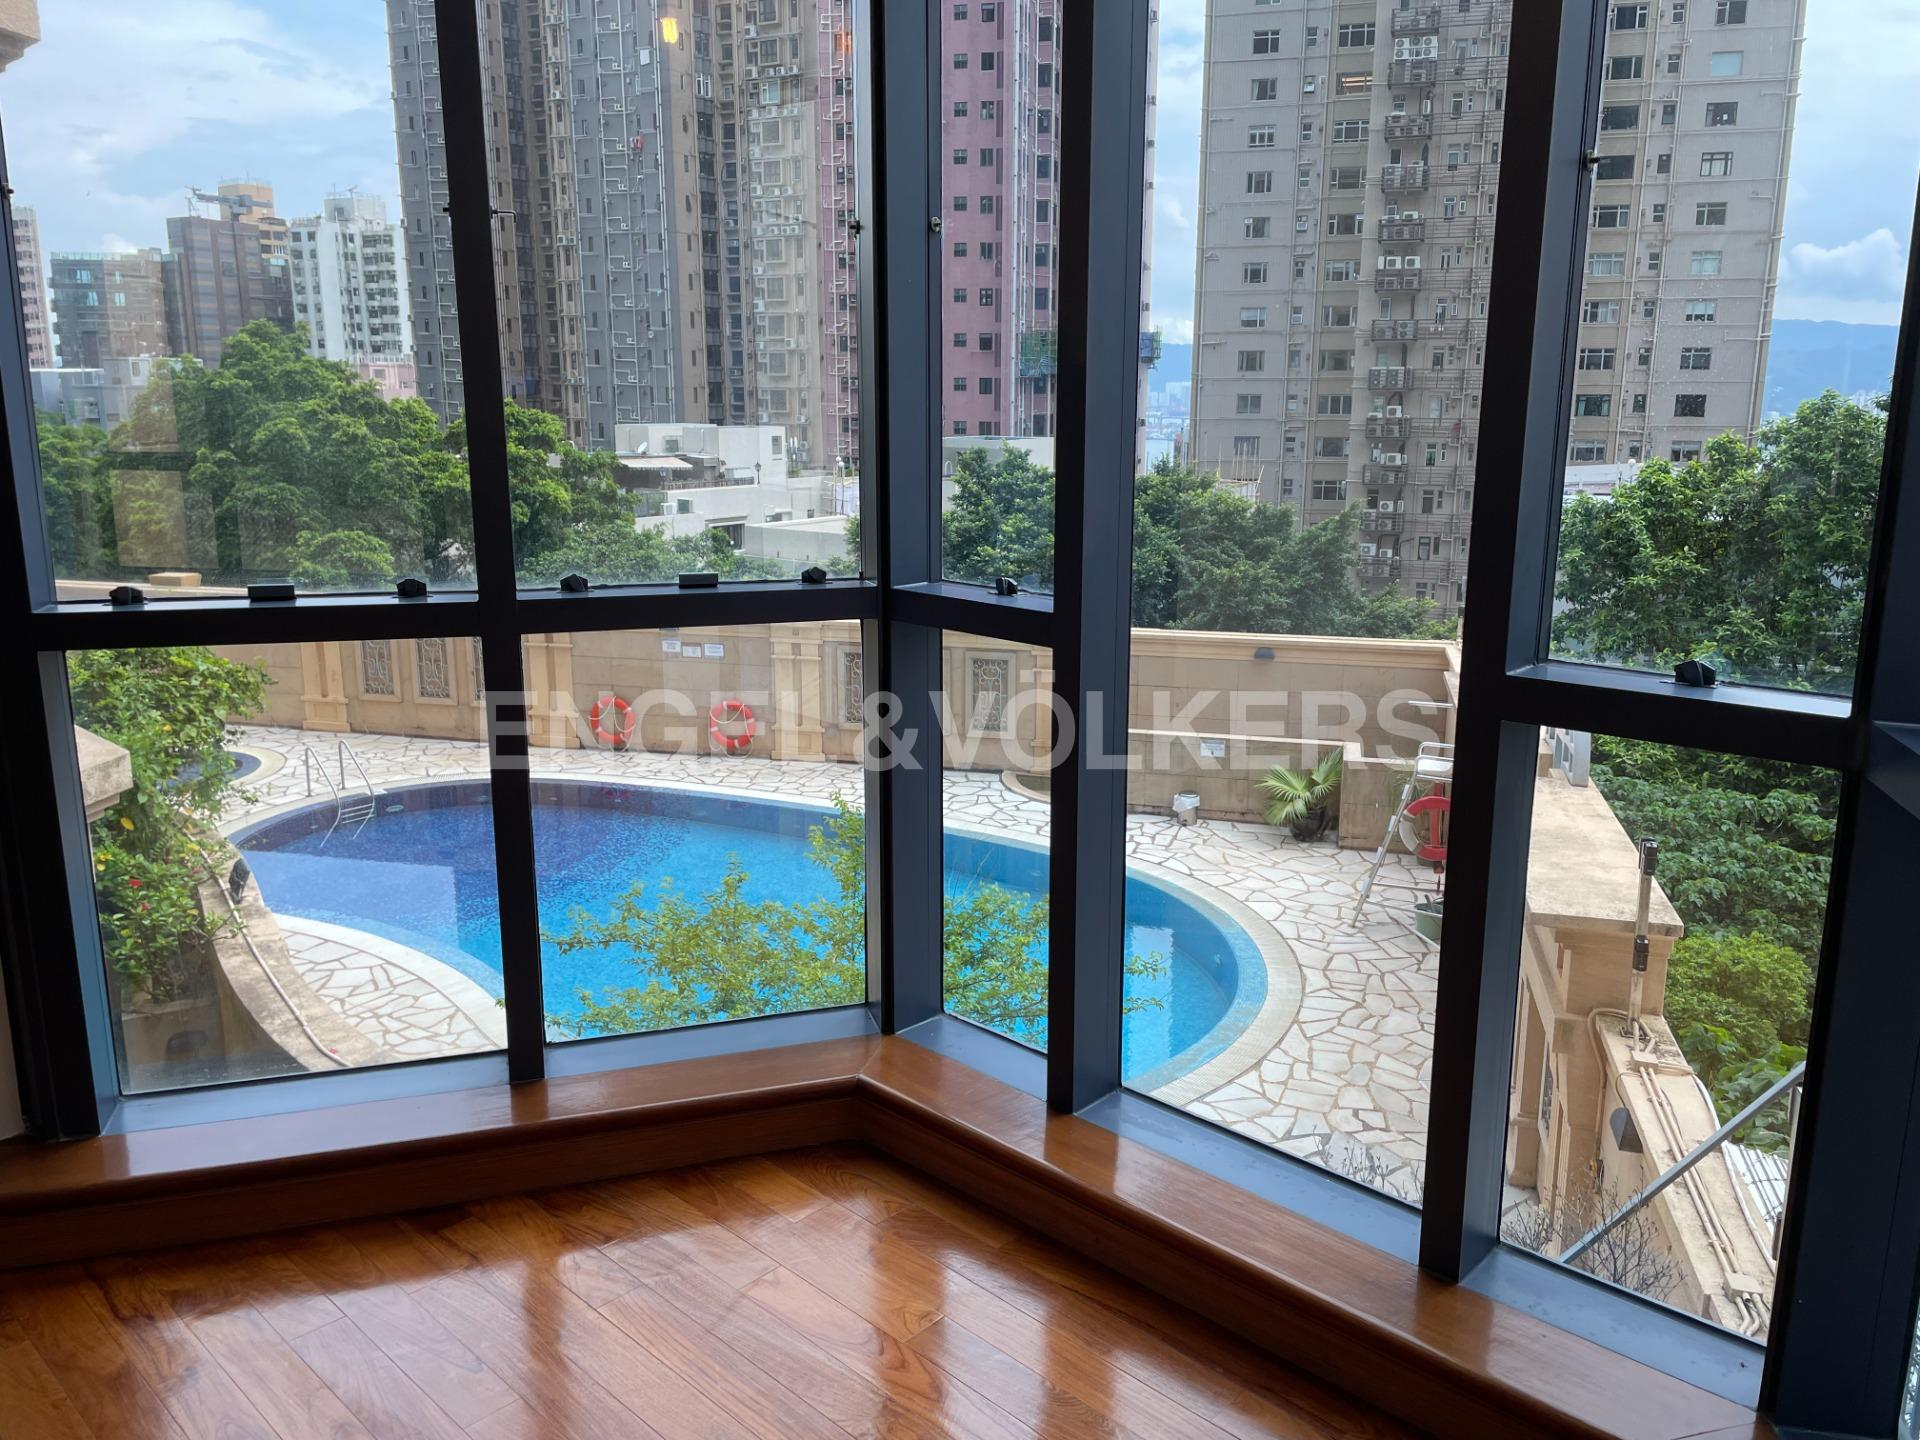 Apartment in Mid Level West / Pok Fu Lam - HADDON COURT 海天閣